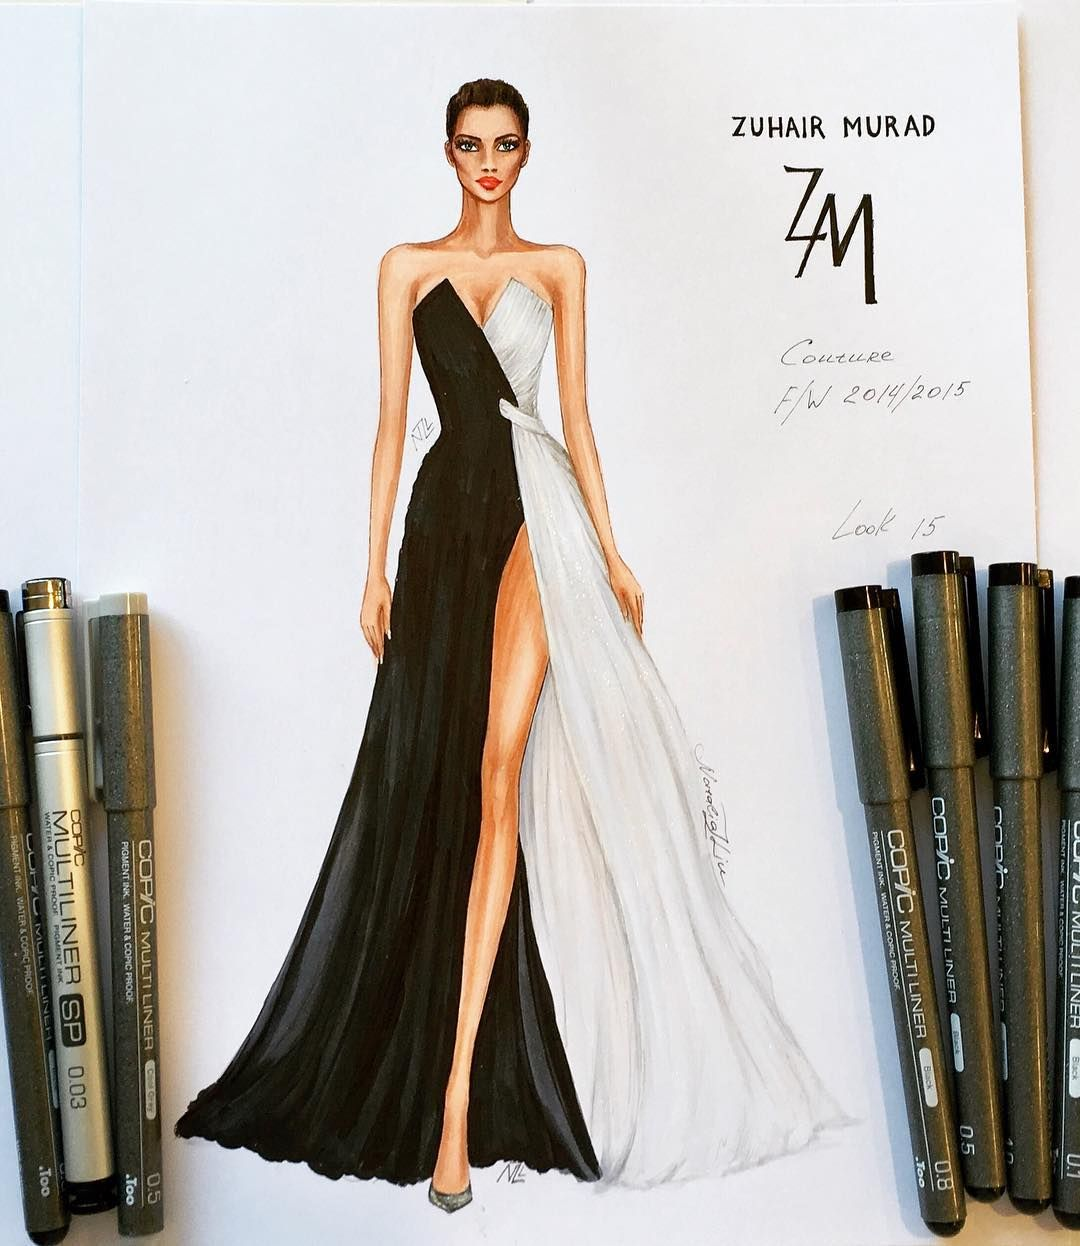 Nataliazorinliu Fashion Sketches Pinterest Luxury